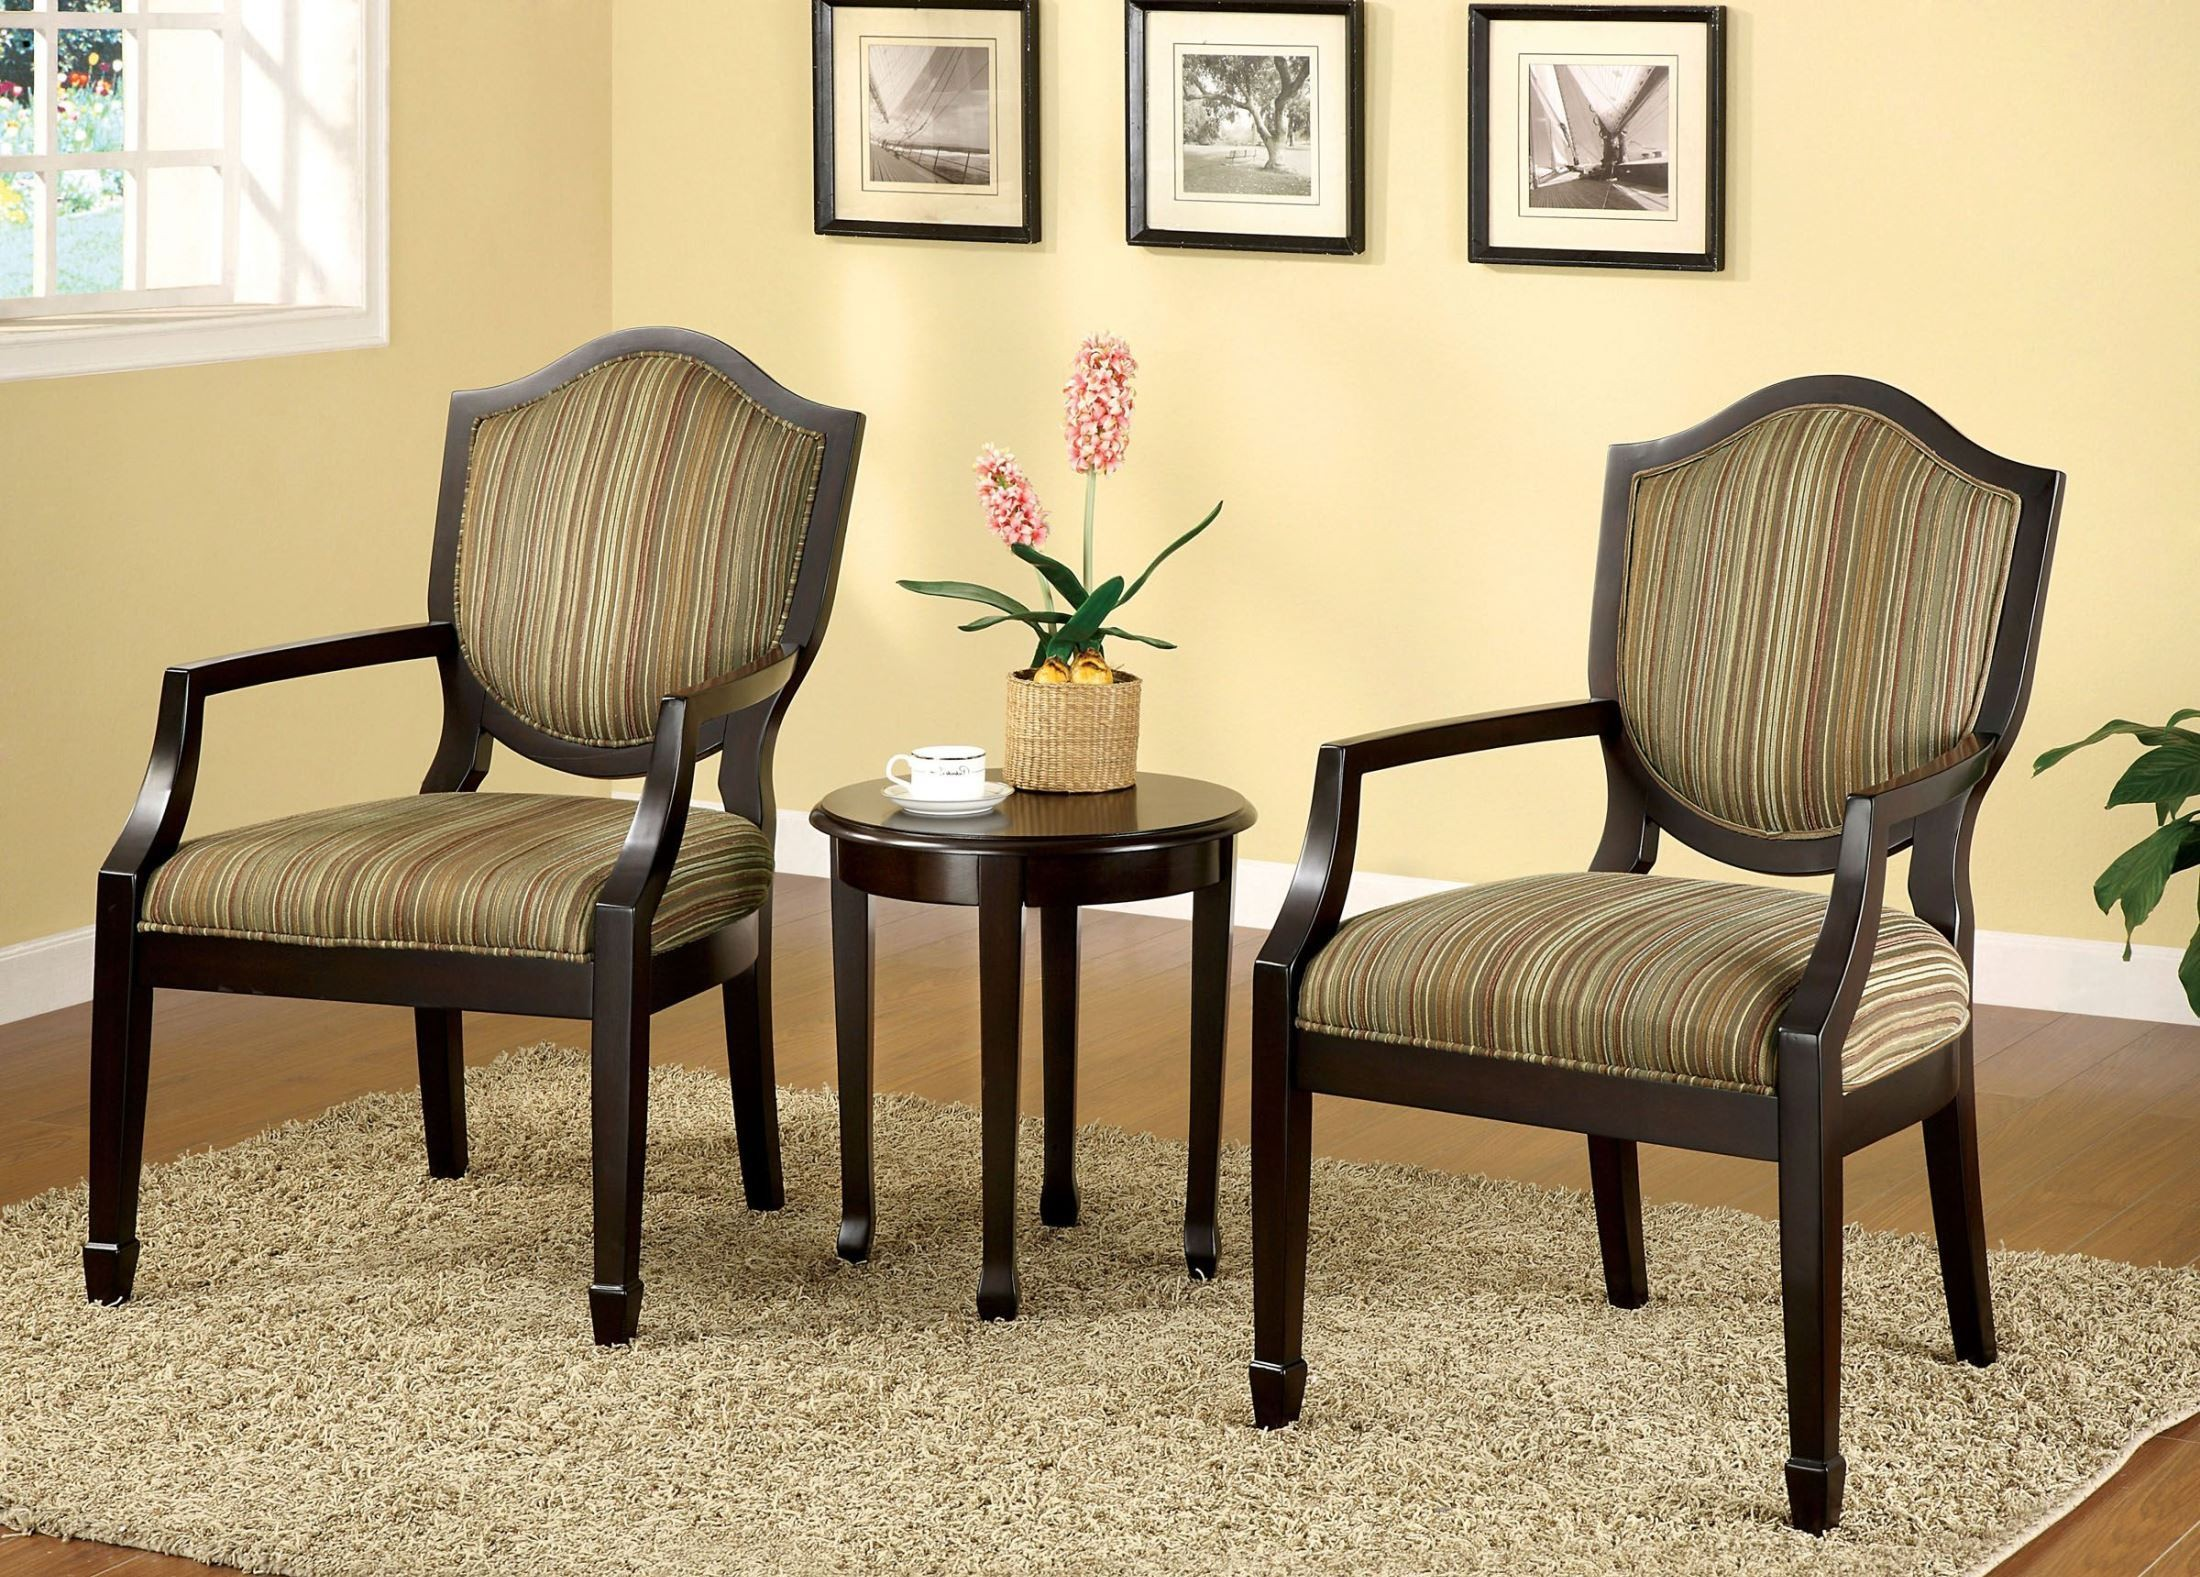 bernetta espresso piece accent table chair set from beach themed floor lamps wedding list ideas chess side small living furniture cream metal farm with leaf cooler middle dining